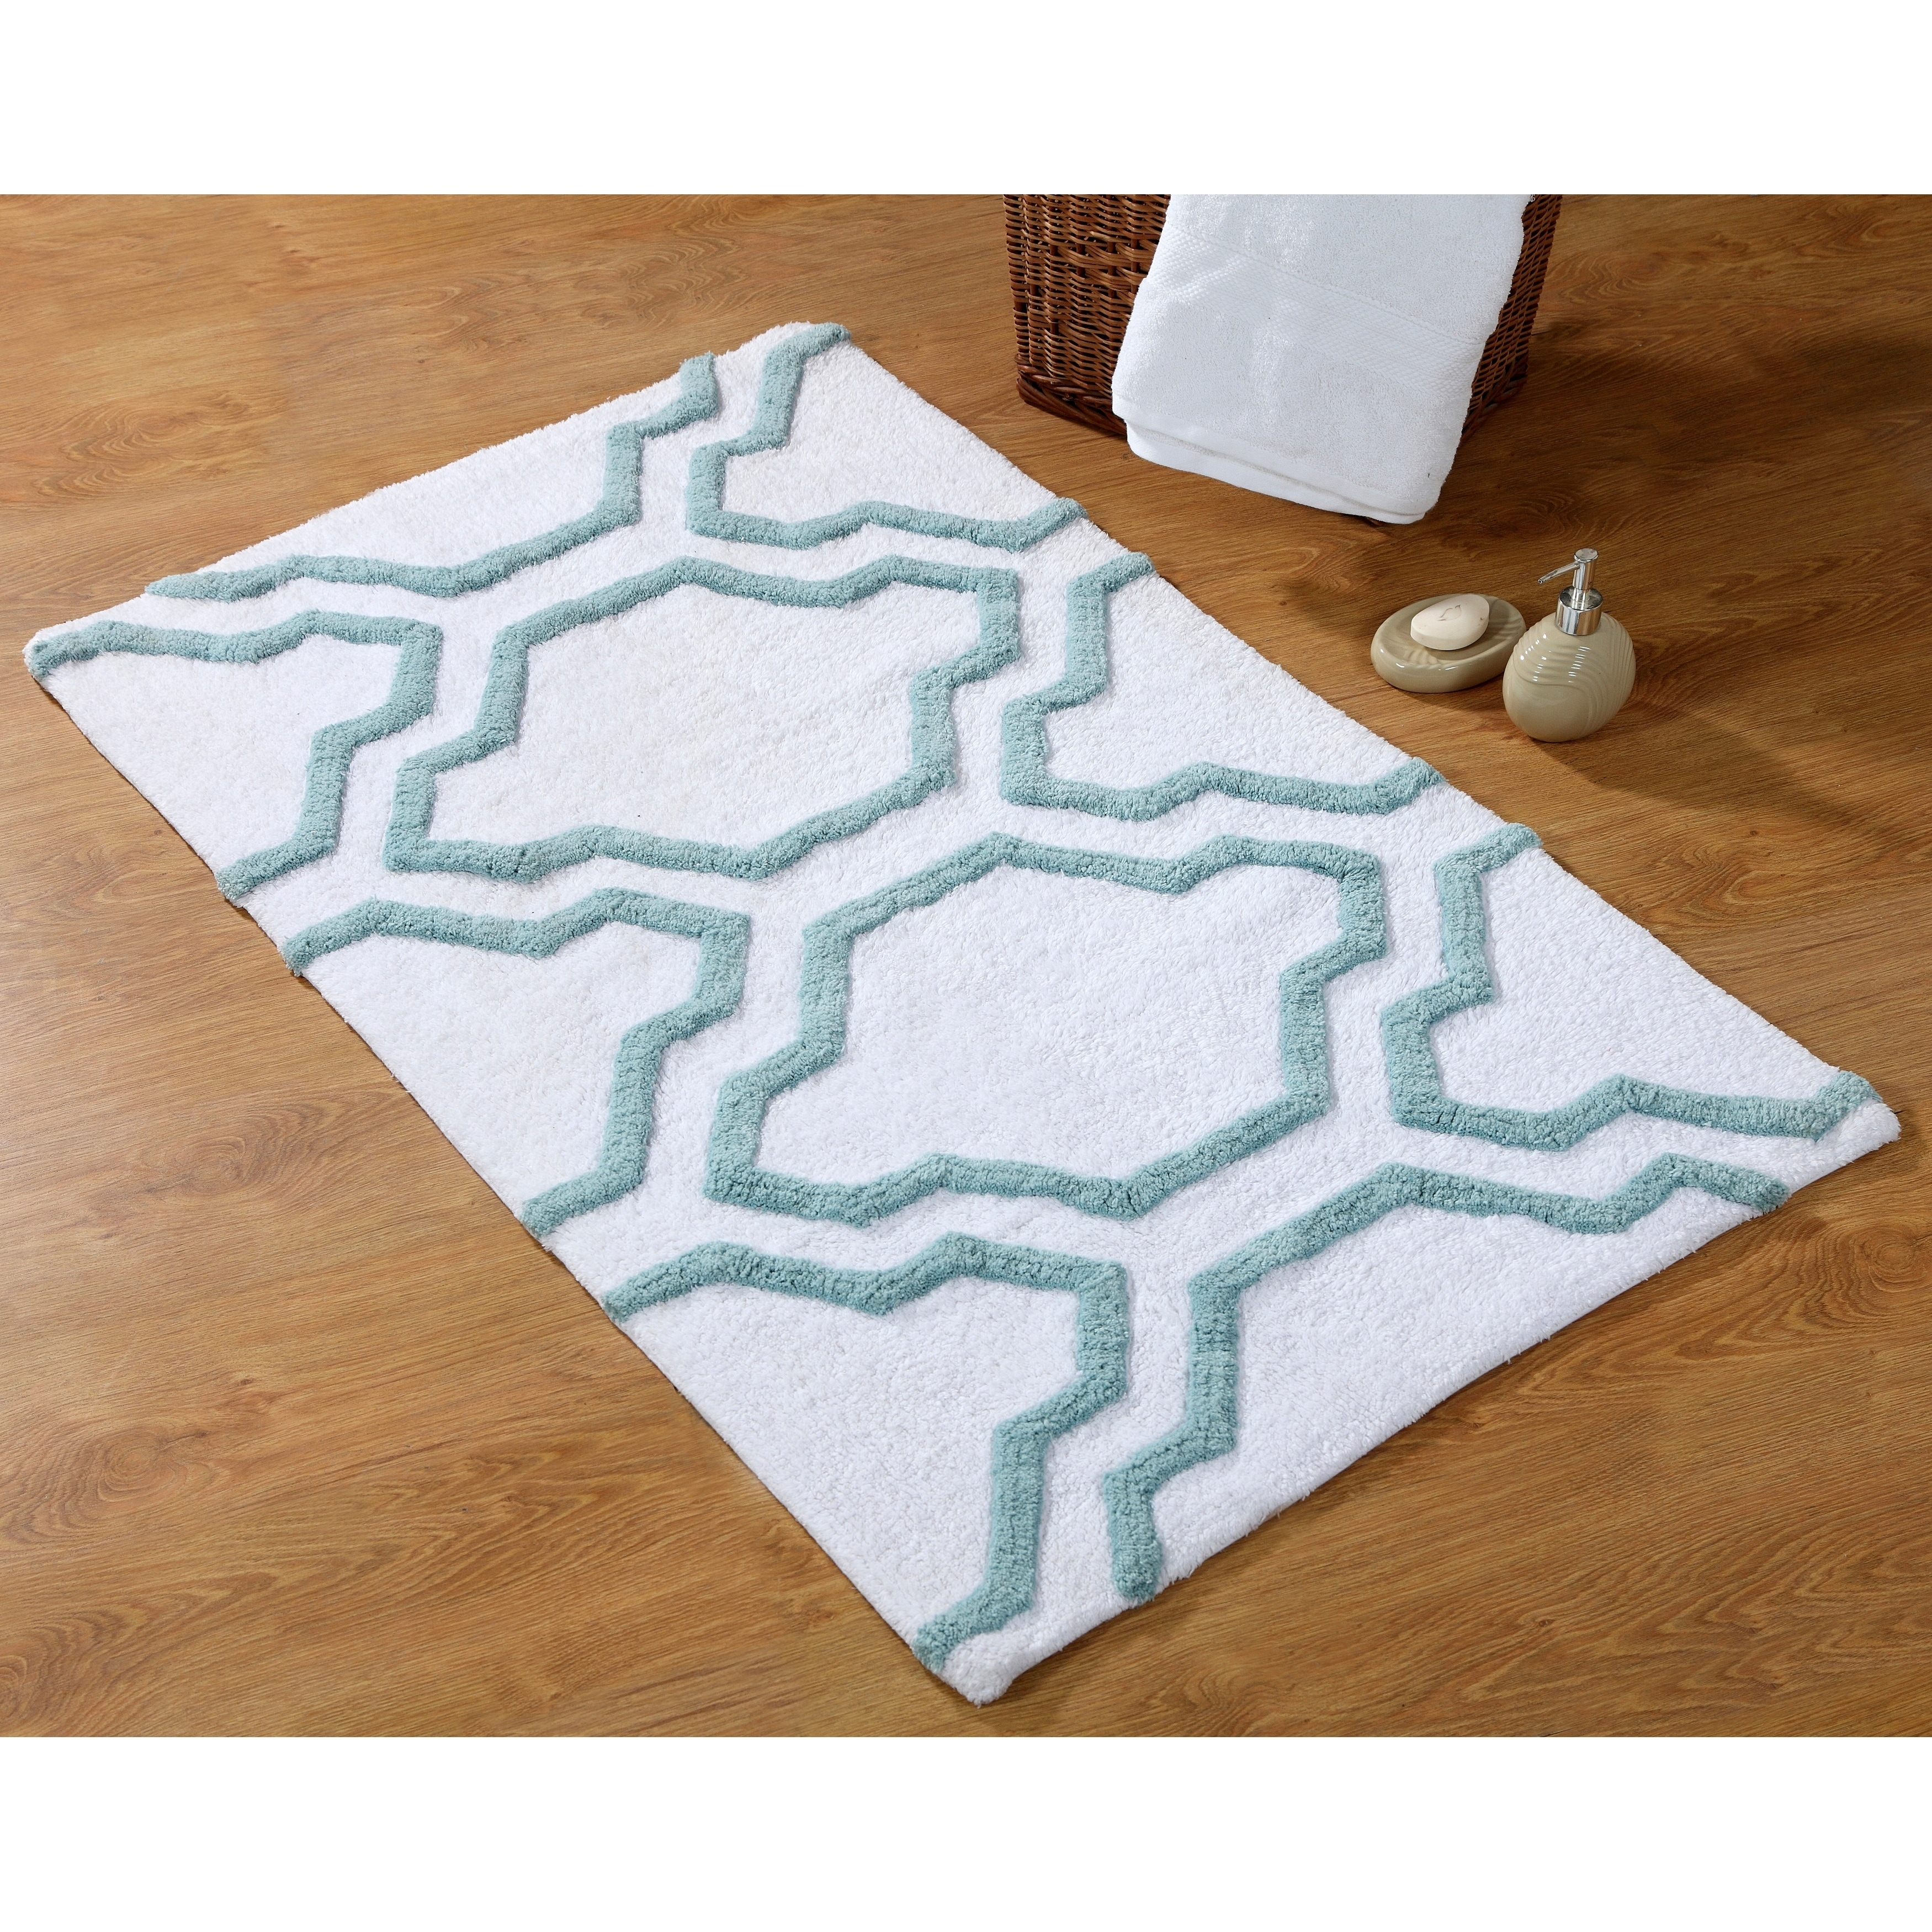 Overstock Com Online Shopping Bedding Furniture Electronics Jewelry Clothing More Cotton Bath Rug Bath Rugs Sets Bath Rug [ 3500 x 3500 Pixel ]